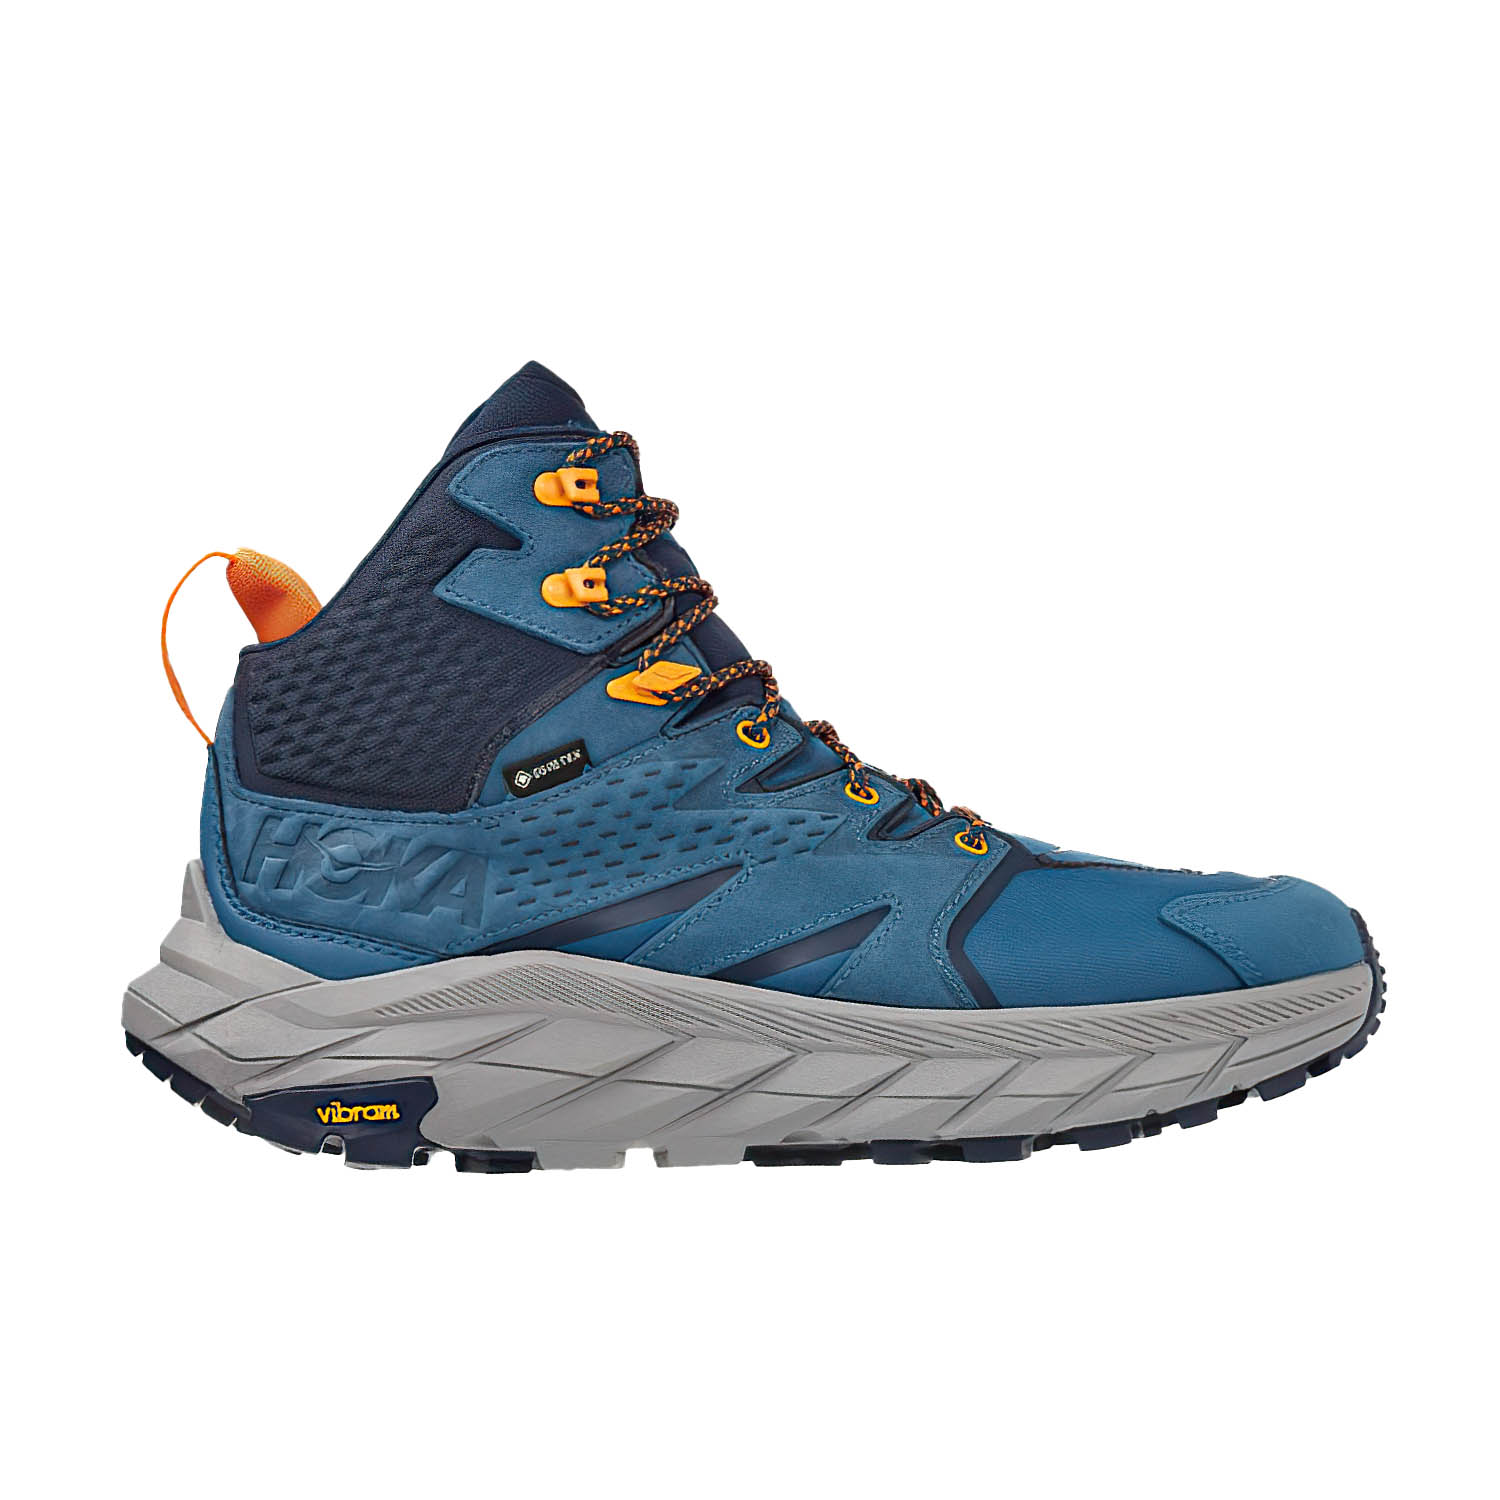 Hoka One One Anacapa Mid GTX - Real Teal/Outer Space